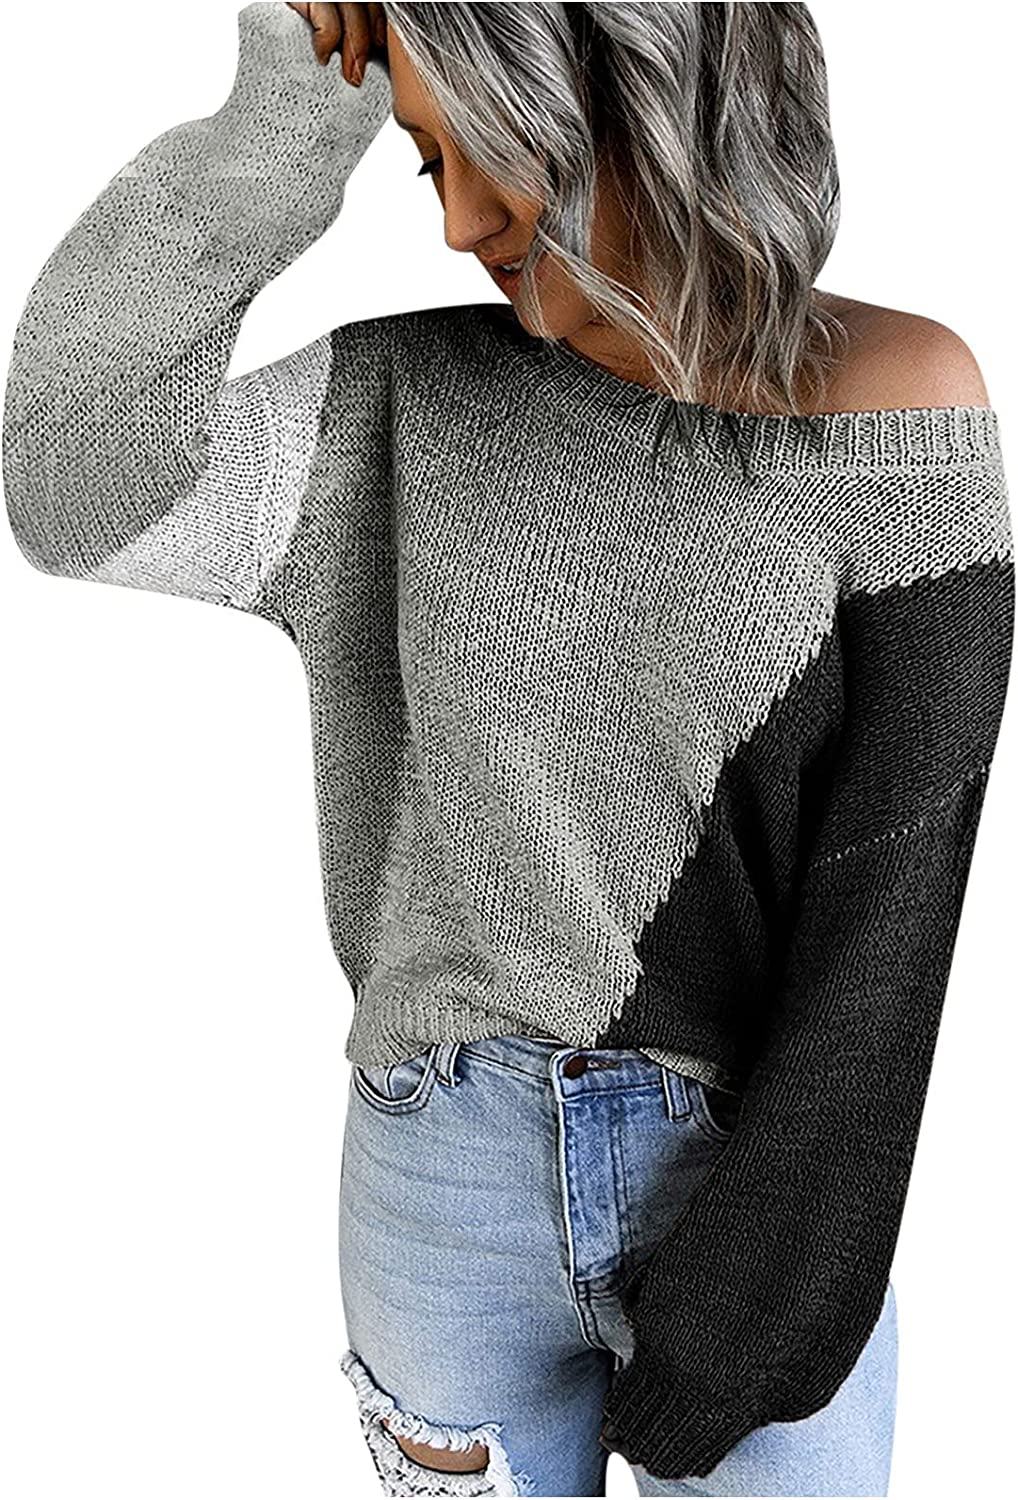 RFNIU Sweaters For Women Fall Fashion Color Block Off Shoulder Crewneck Pullover Casual Temperament Long Sleeve Tops